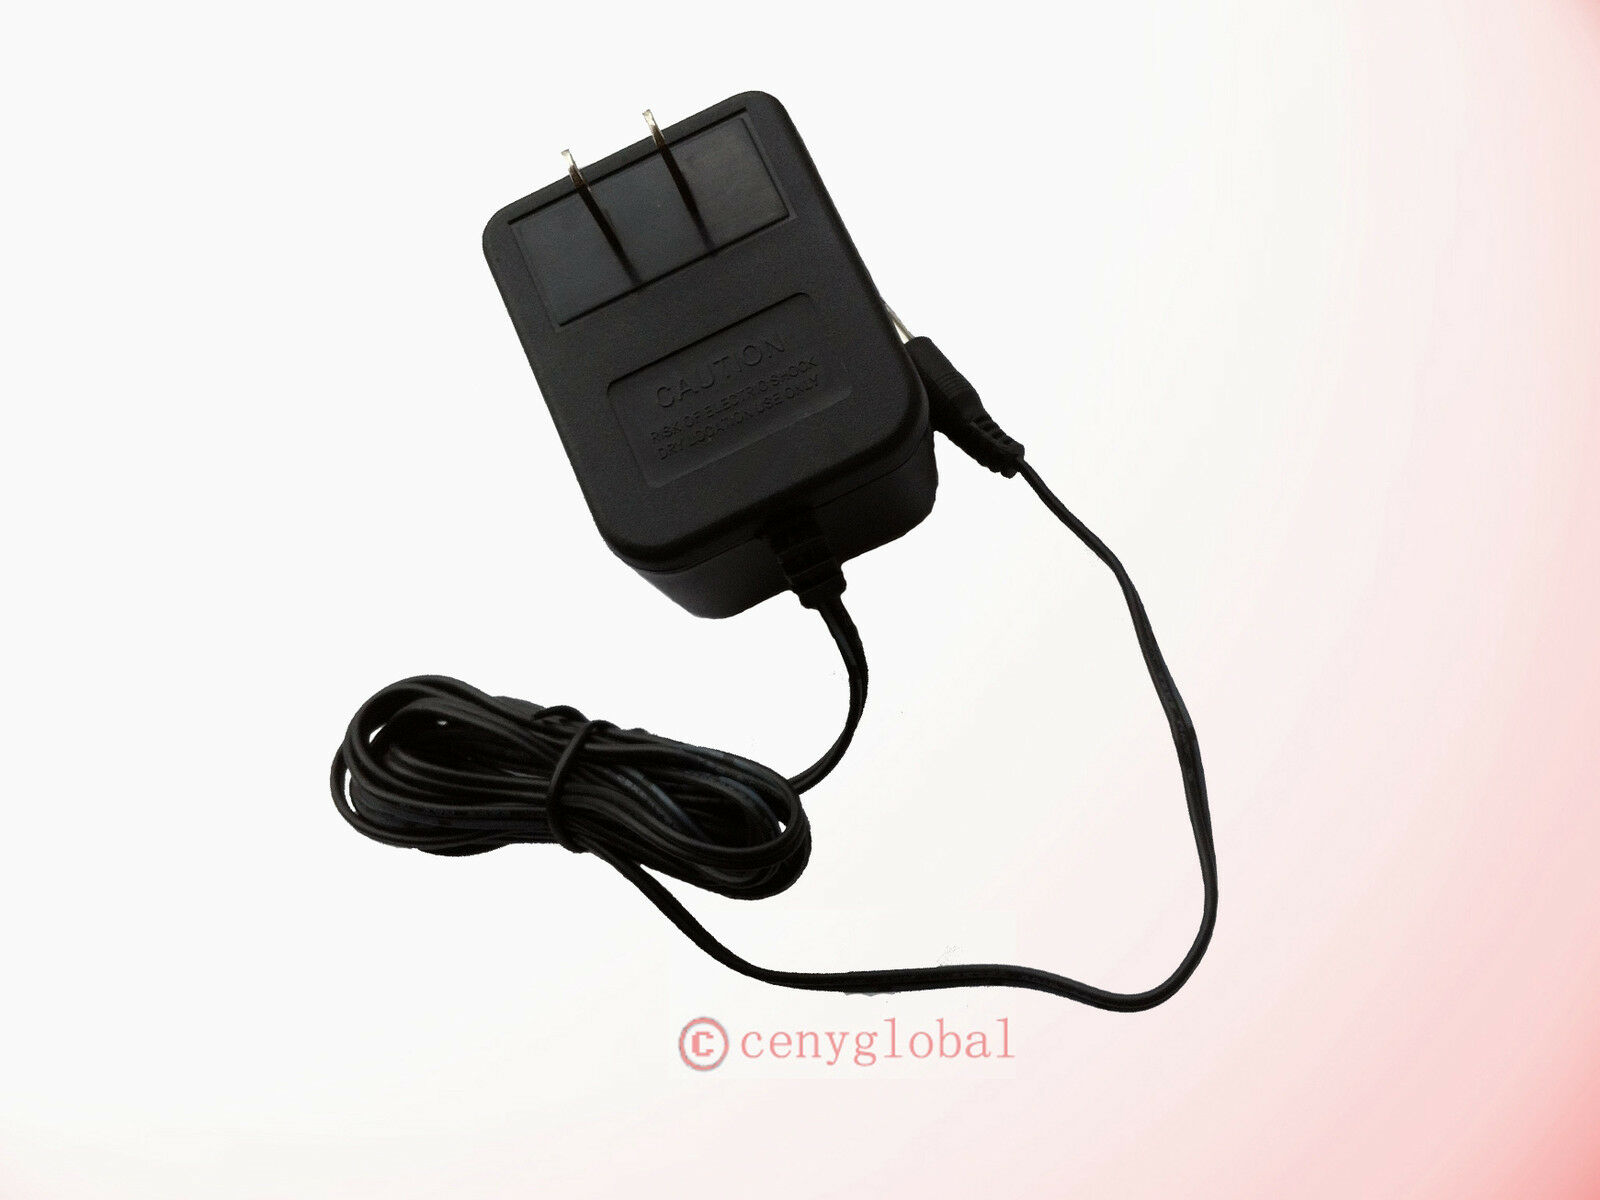 AC Adapter Charger For GE RCA ViSYS 25055RE1 H5250RE1-A 25055RE1-B Cradle PSU